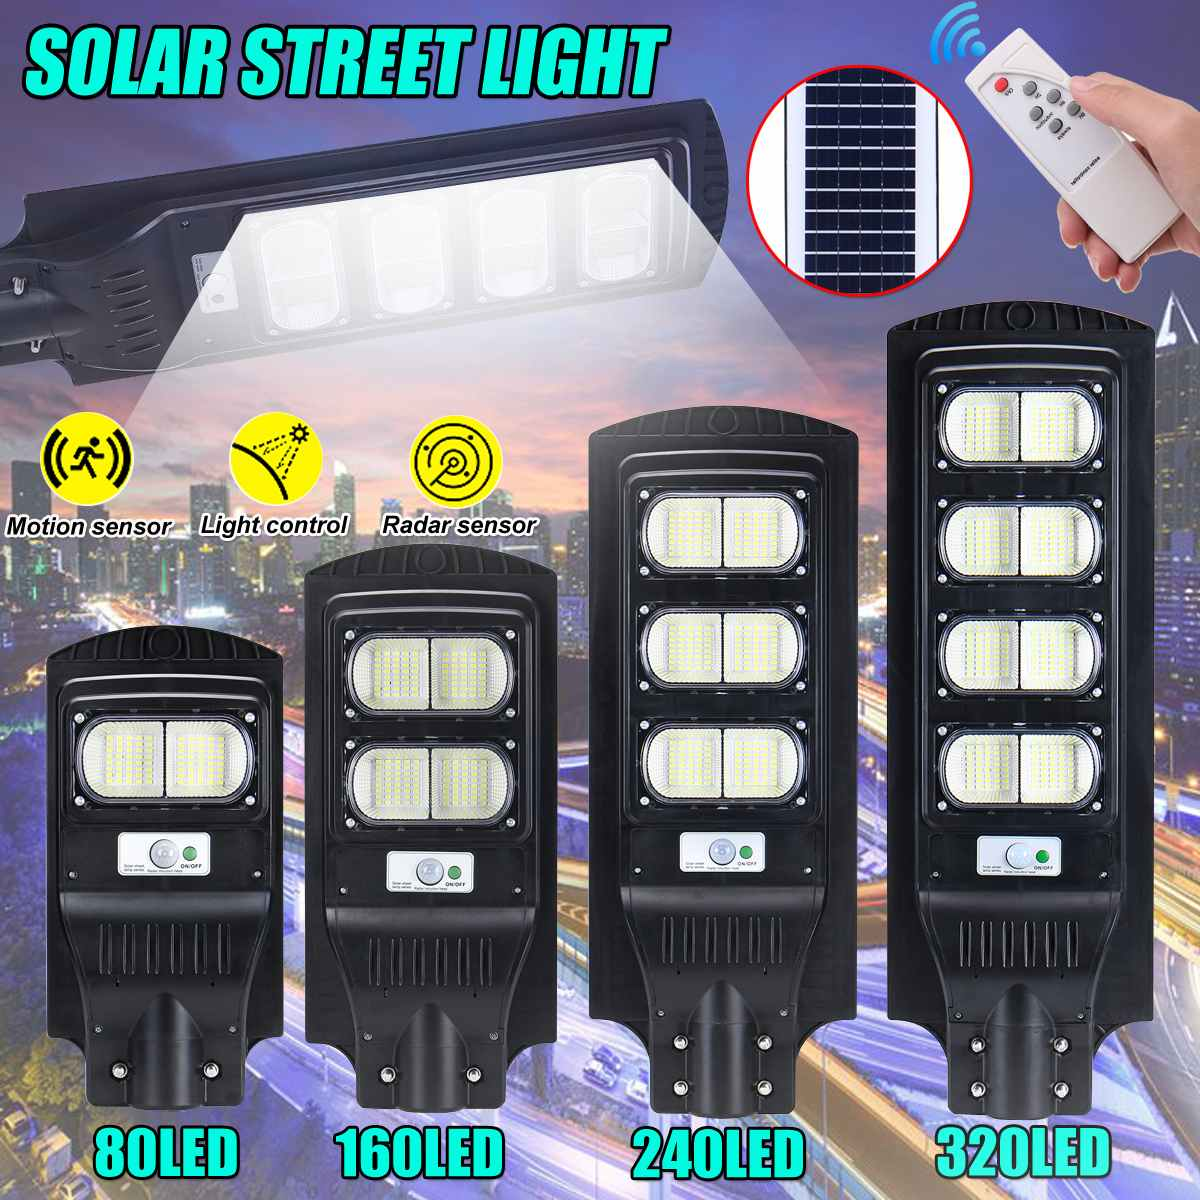 Polycrystalline Solar Led Street Light Infrared Motion Wall Light Sensor 200 300 400 800W Outdoor Lighting Garden Lamp led light